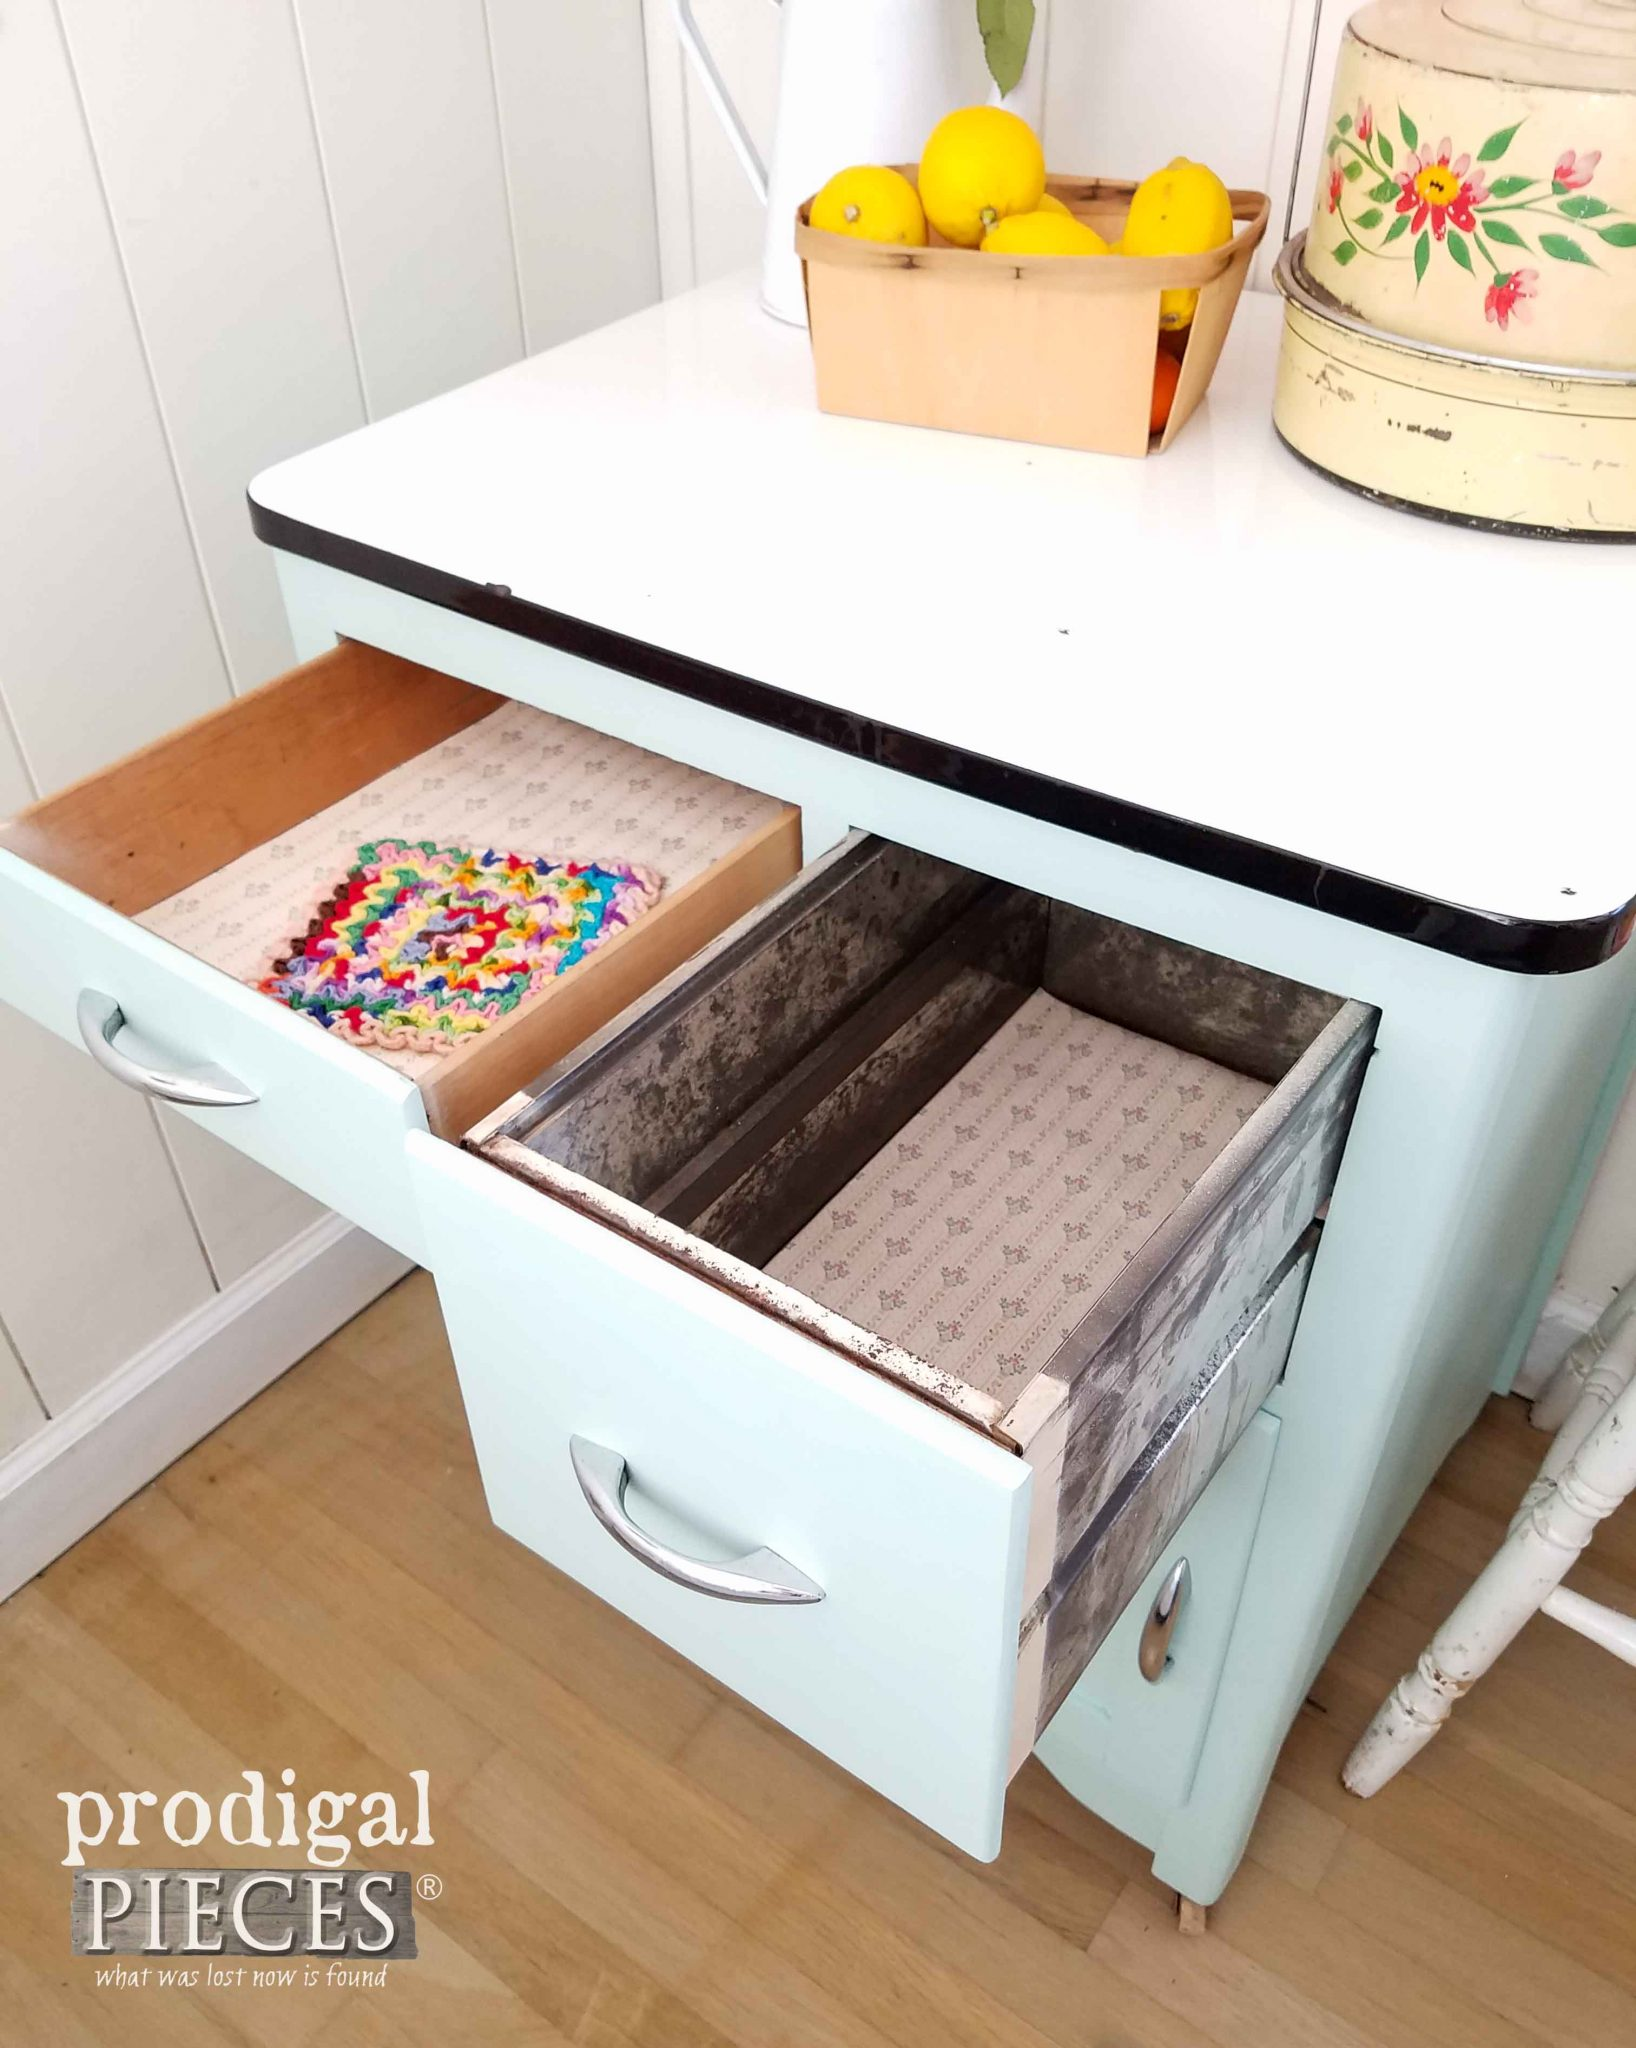 Open Bread Drawer on Vintage Enamel Cabinet by Prodigal Pieces | prodigalpieces.com